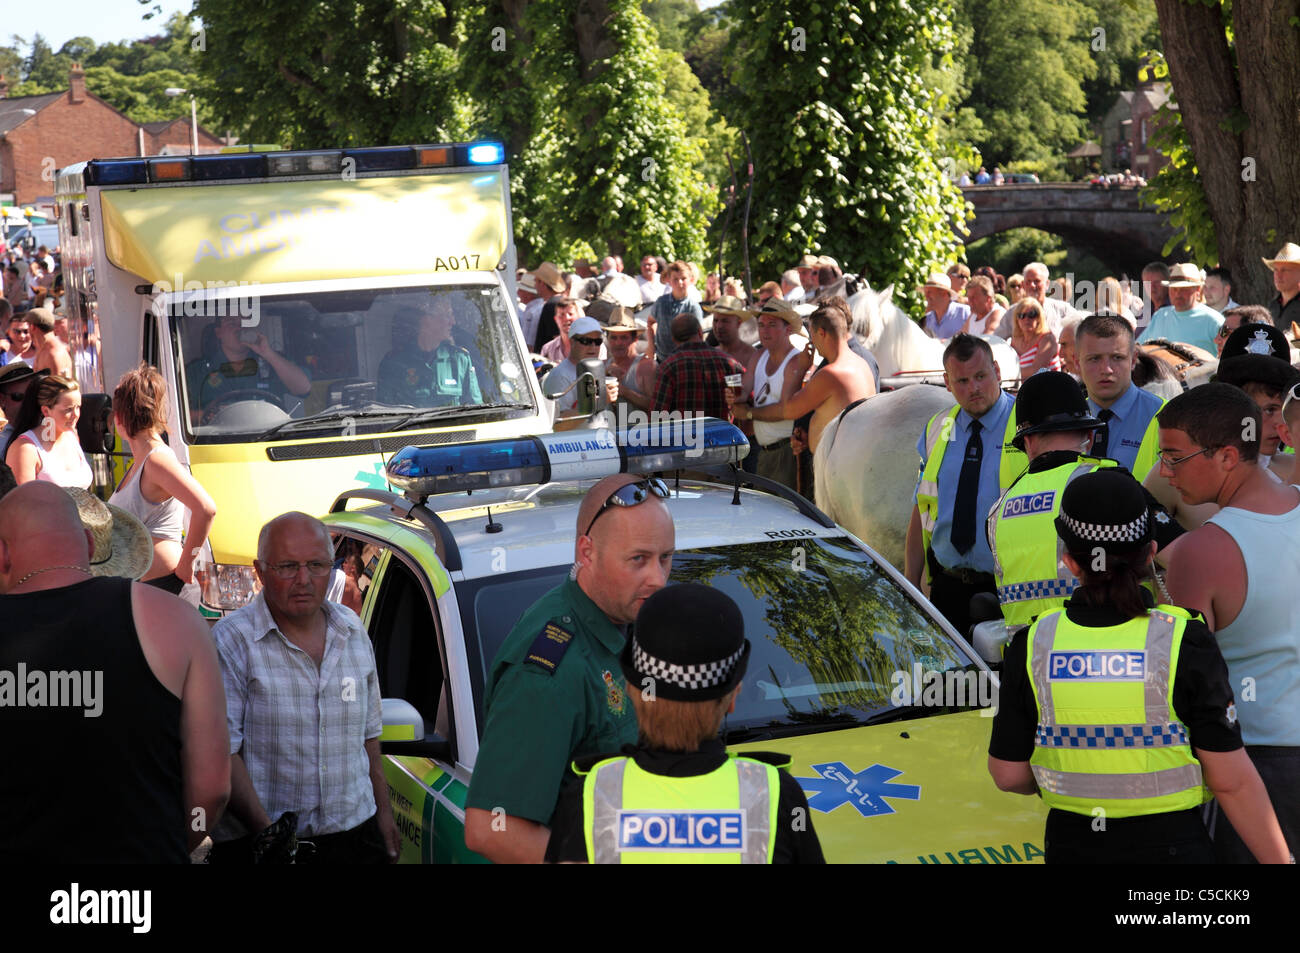 The emergency services at an incident at the Appleby Horse Fair in Appleby-In-Westmorland, Cumbria, England, U.K. - Stock Image